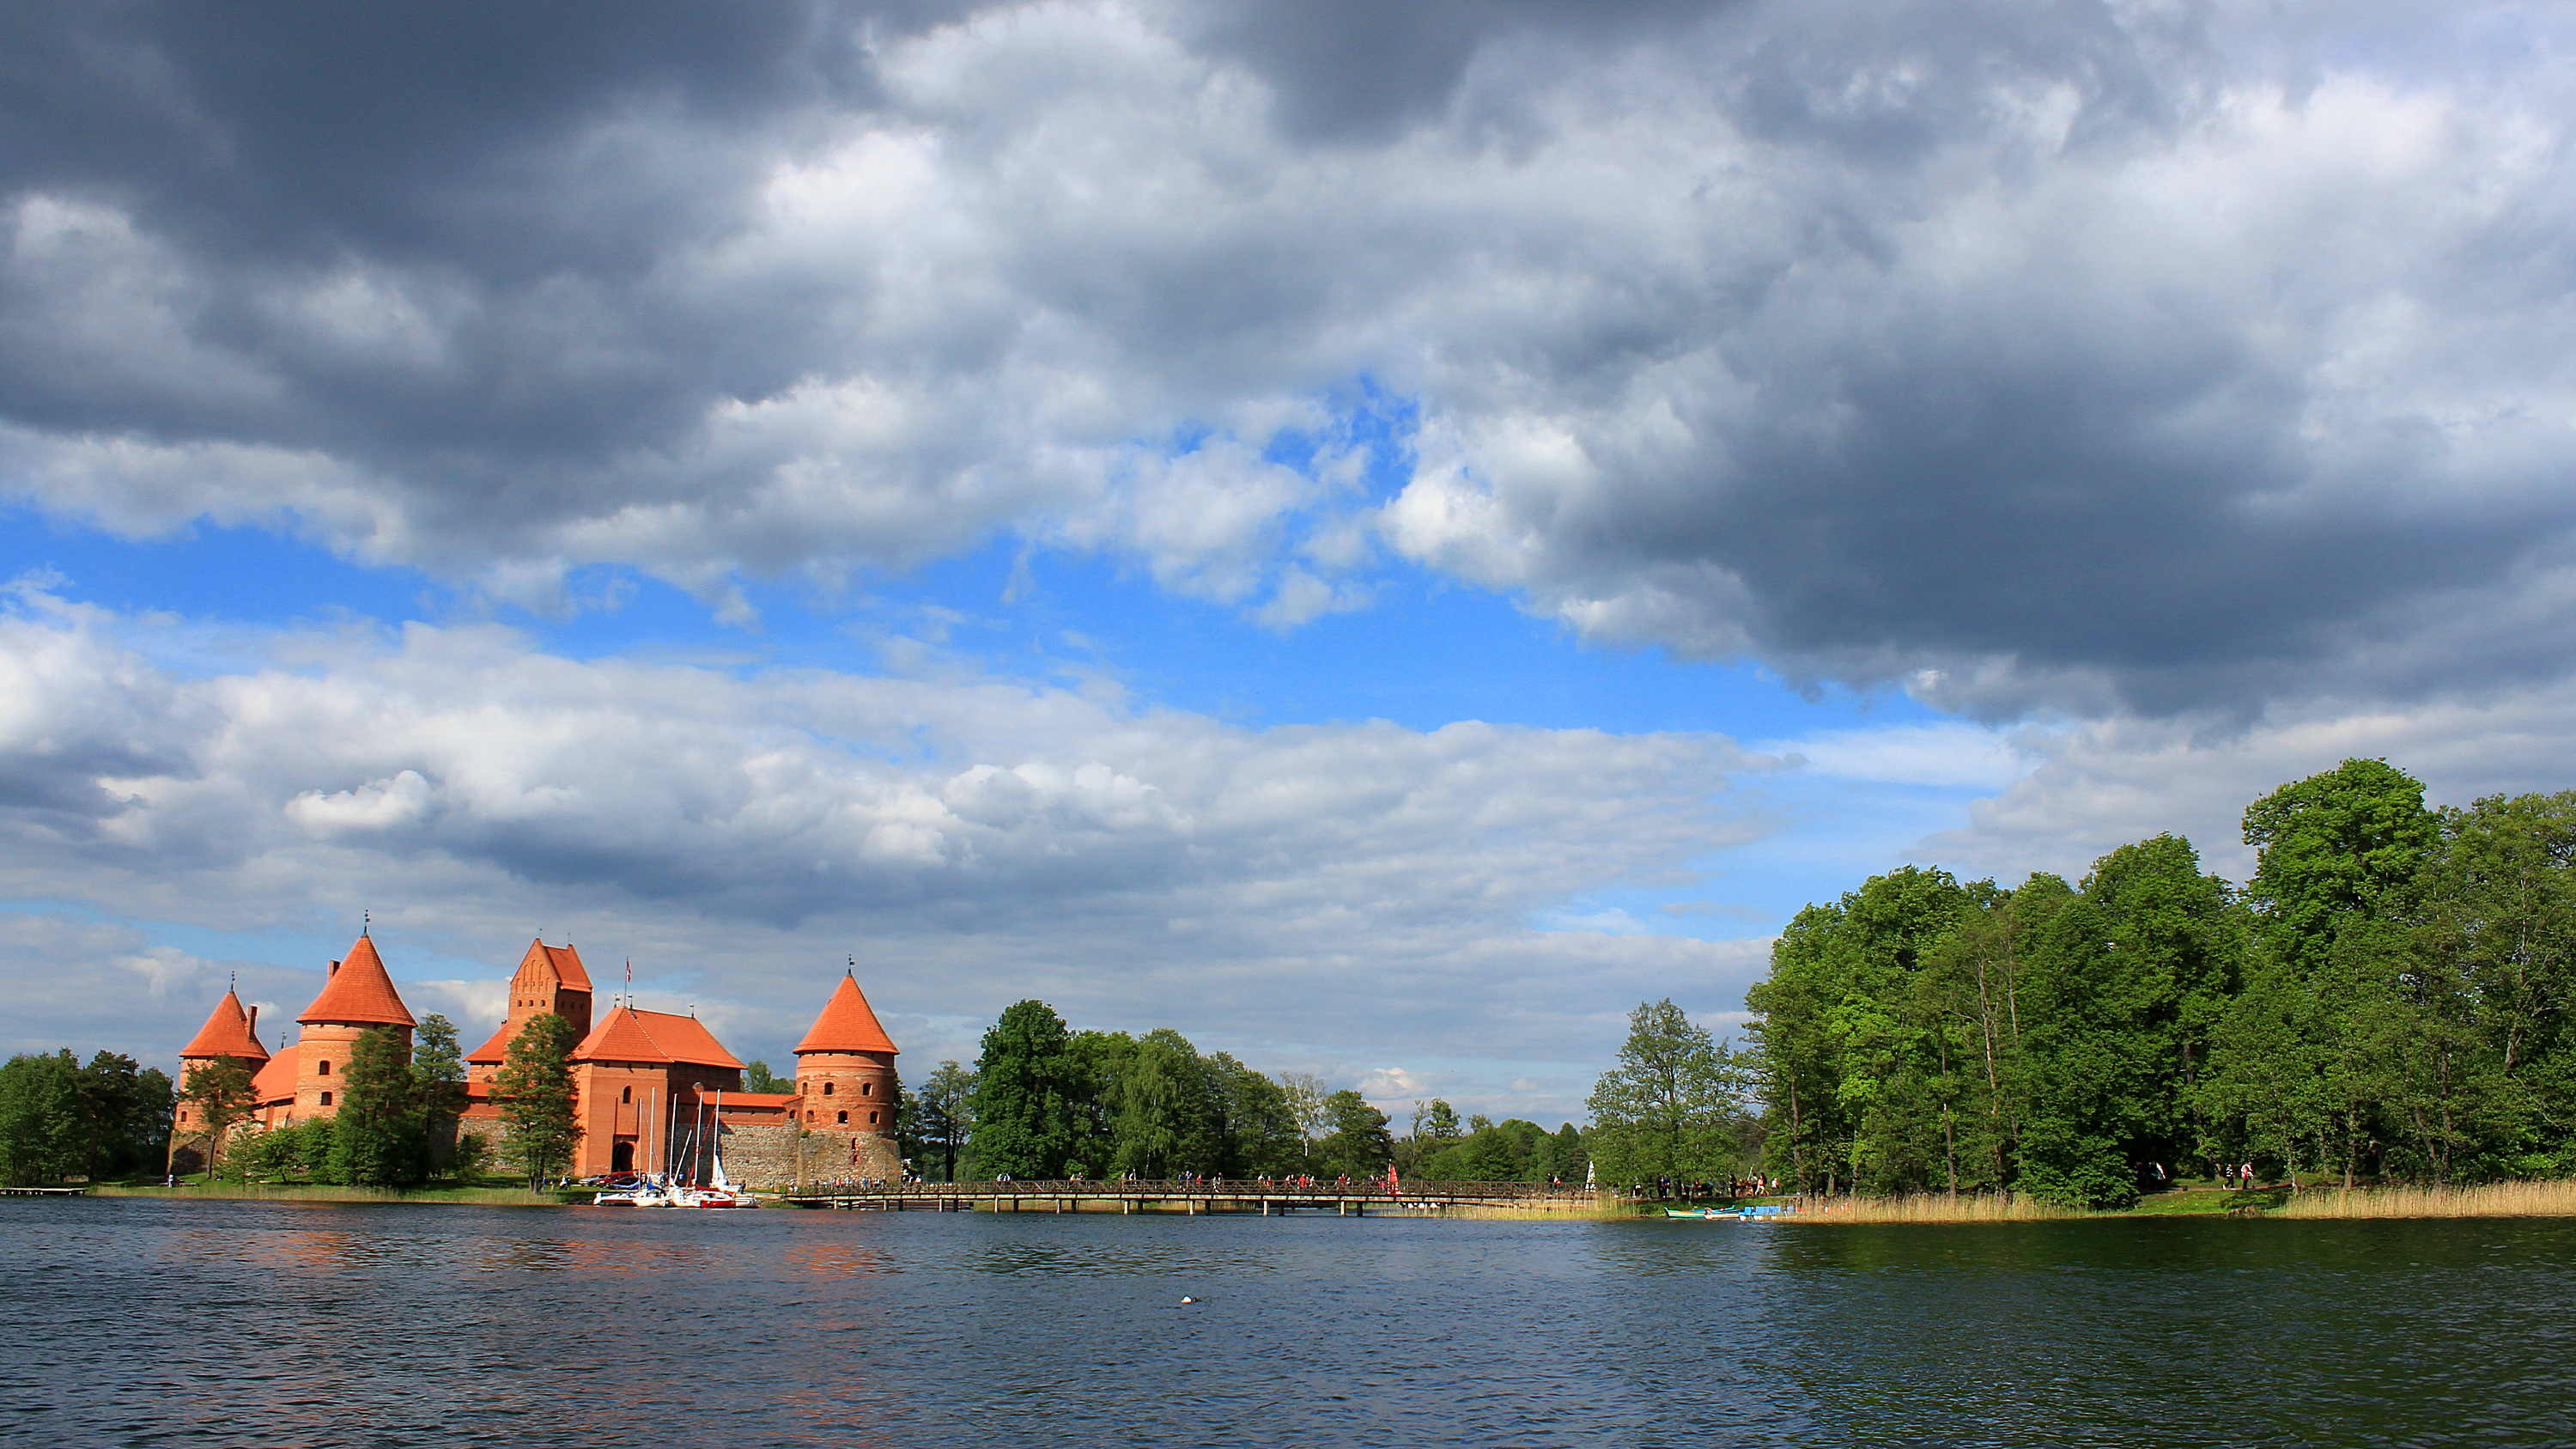 The historical Trakai Castle in Lithuania with a beautiful surrounding scenery.